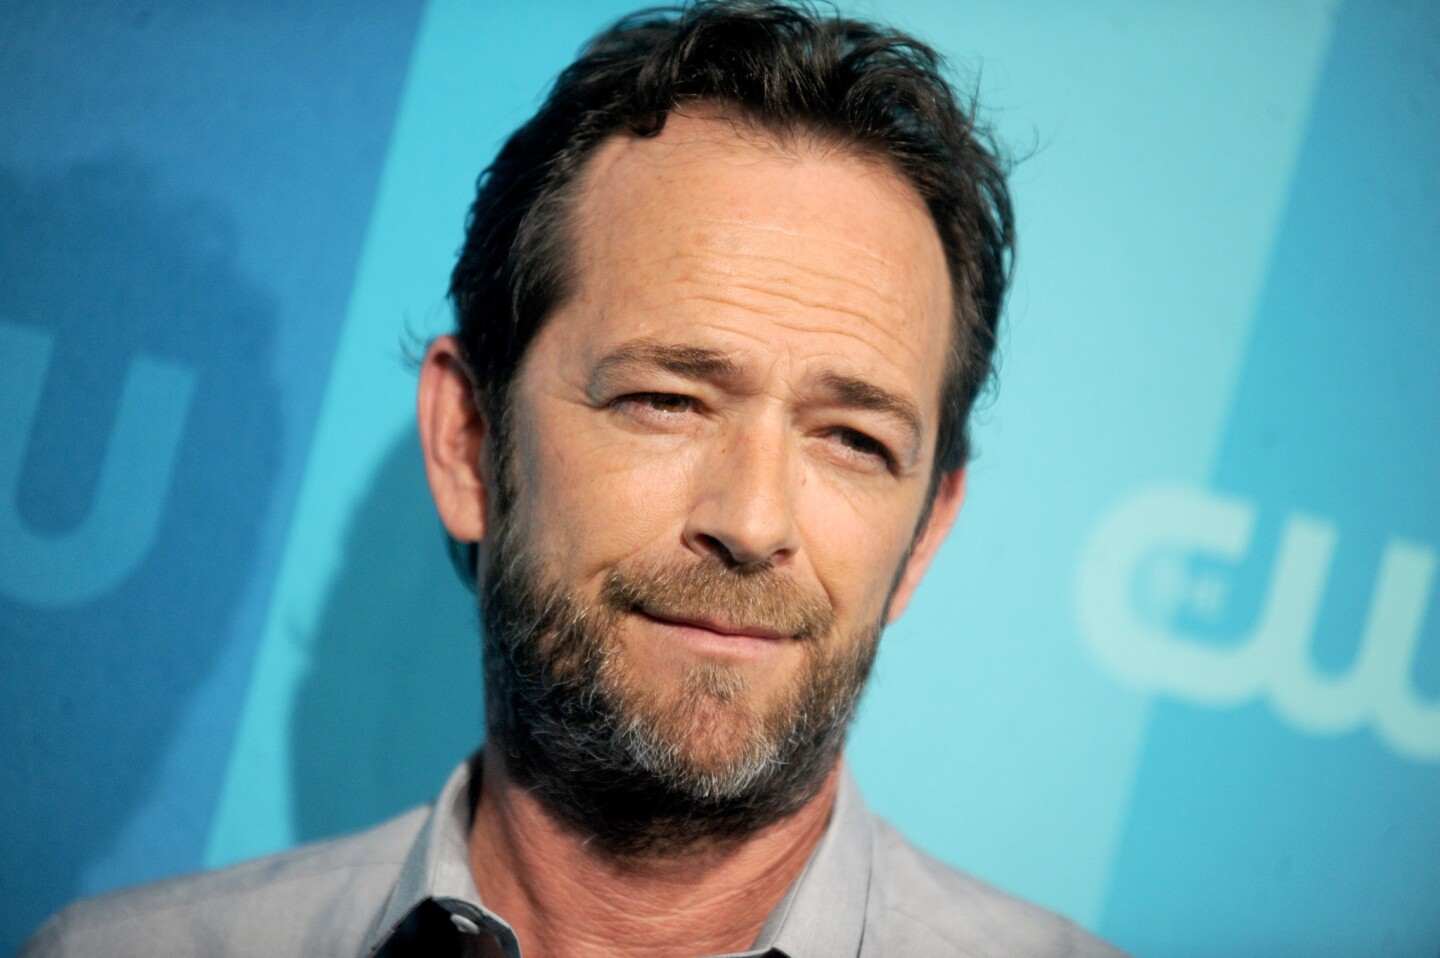 Luke Perry attending the 2017 CW Upfront in New York City on May 18, 2017.